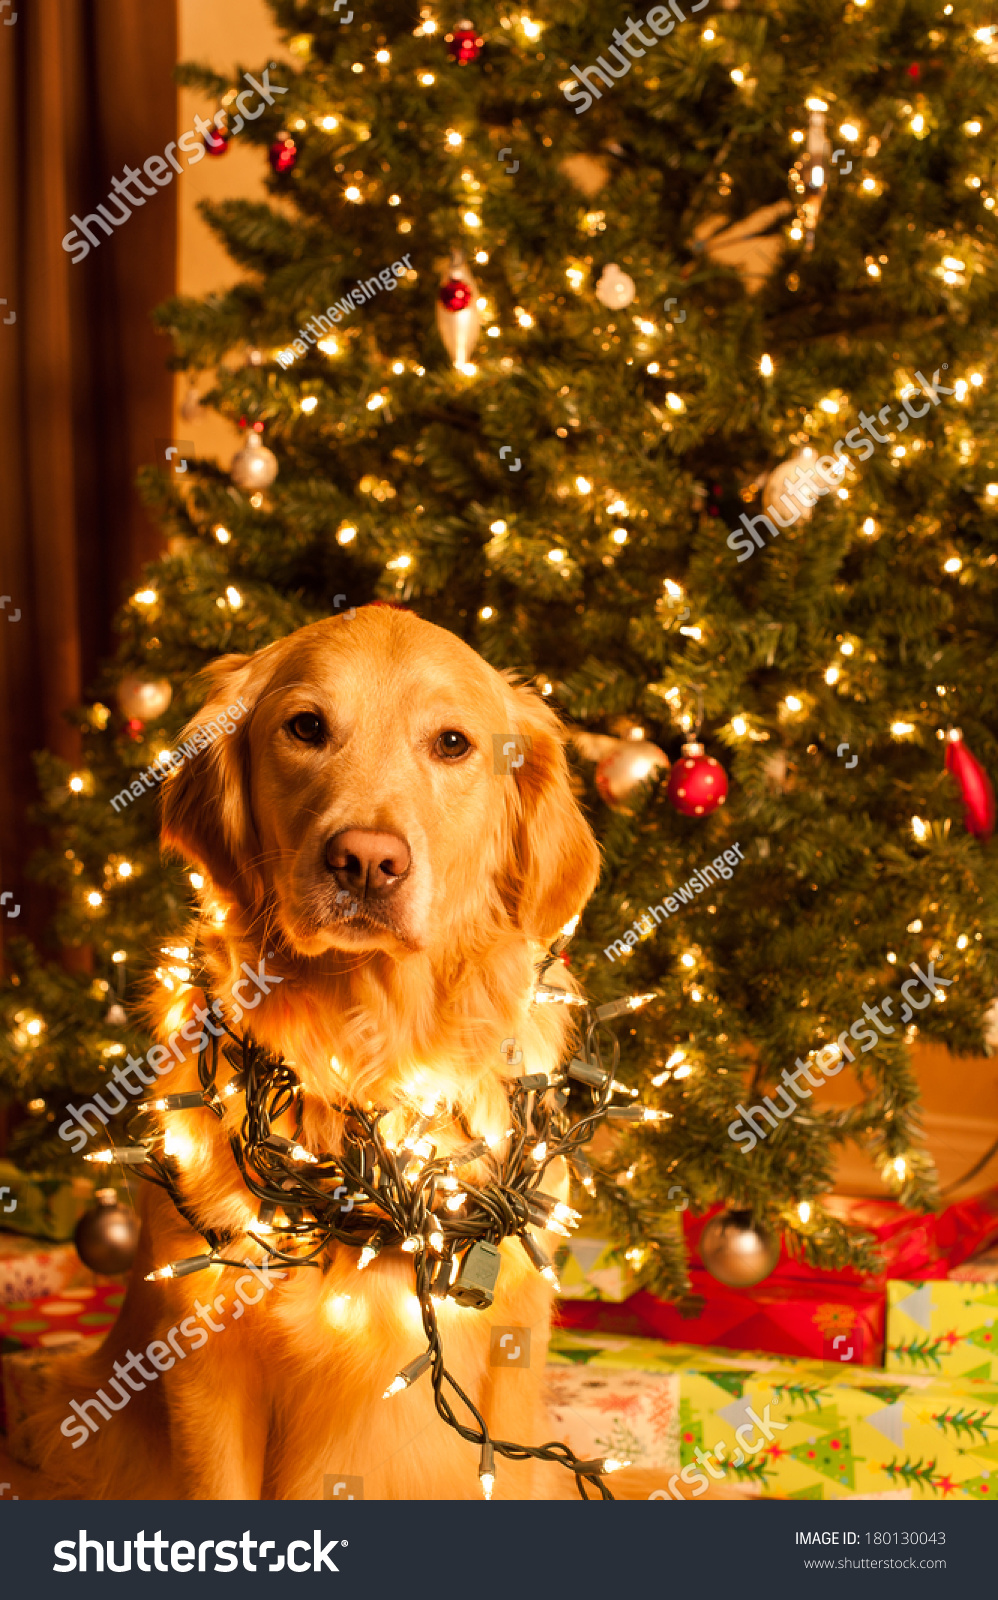 a golden retriever dog sits wrapped in christmas lights in front of a christmas tree - Dog Christmas Lights